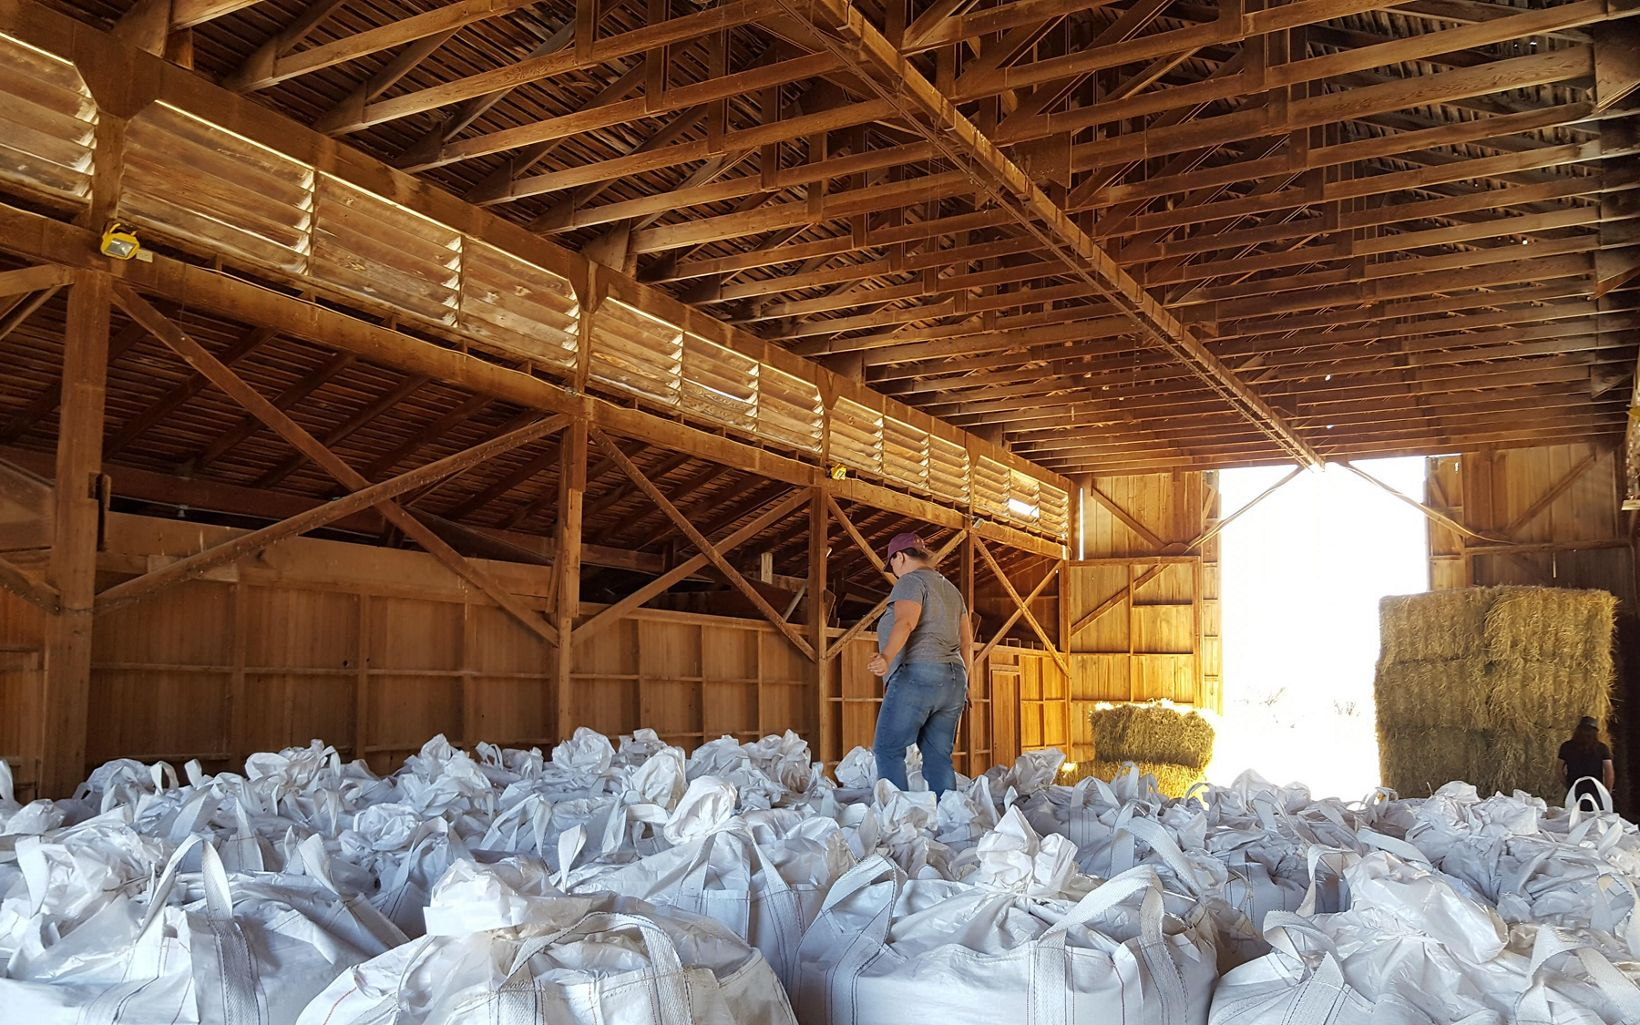 Kim Schonek amidst bags of barley ready for malting at Sinagua Malt.